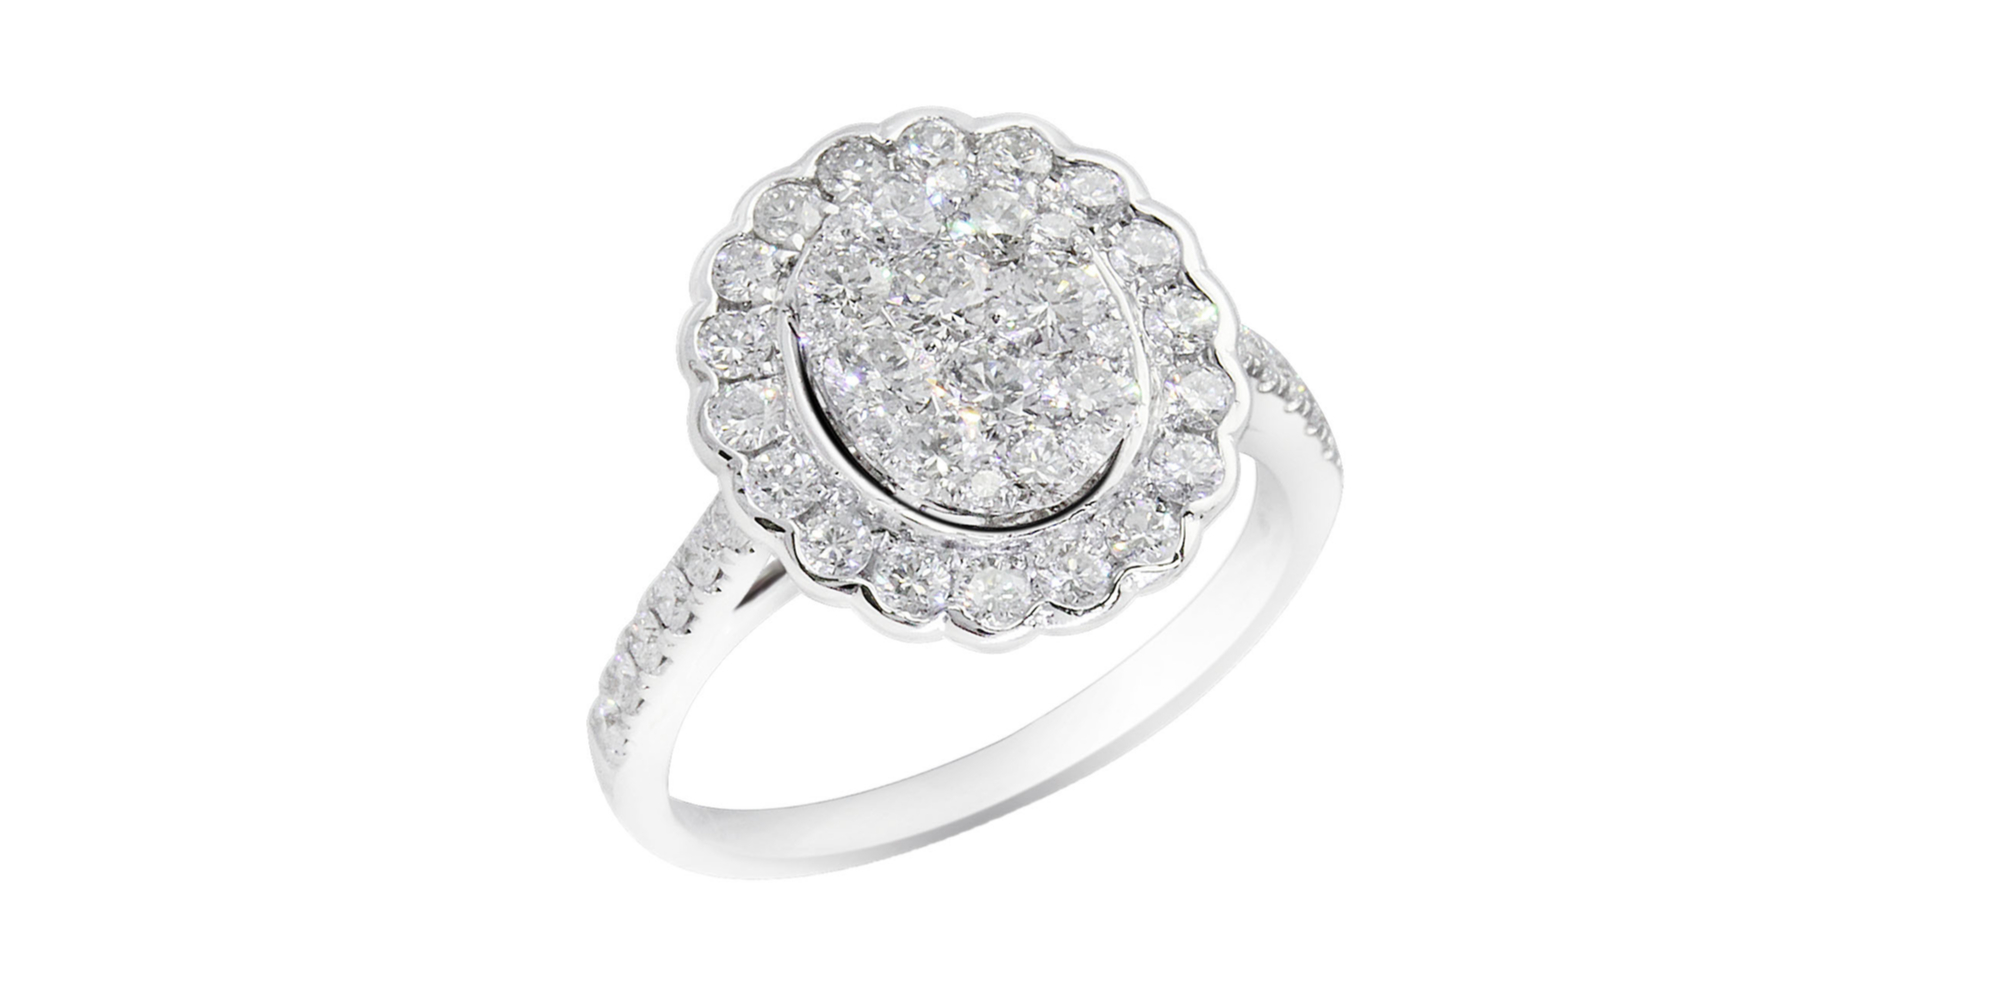 If you want a seamless halo engagement ring, here are some amazing designs